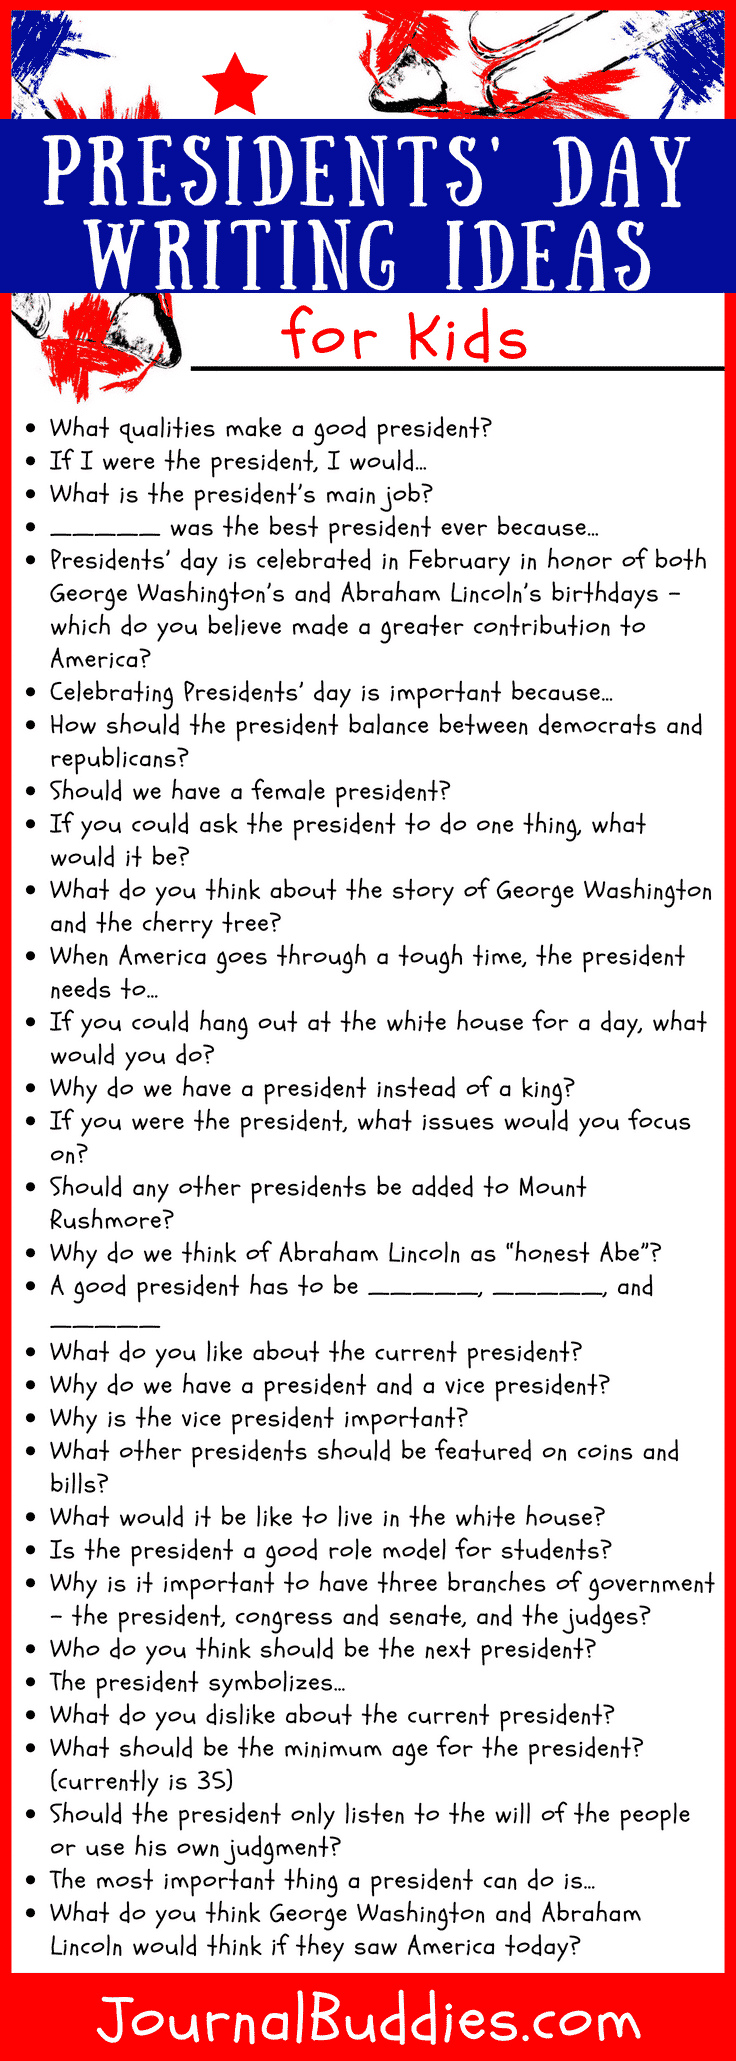 Presidents' Day Journal Prompts for Kids